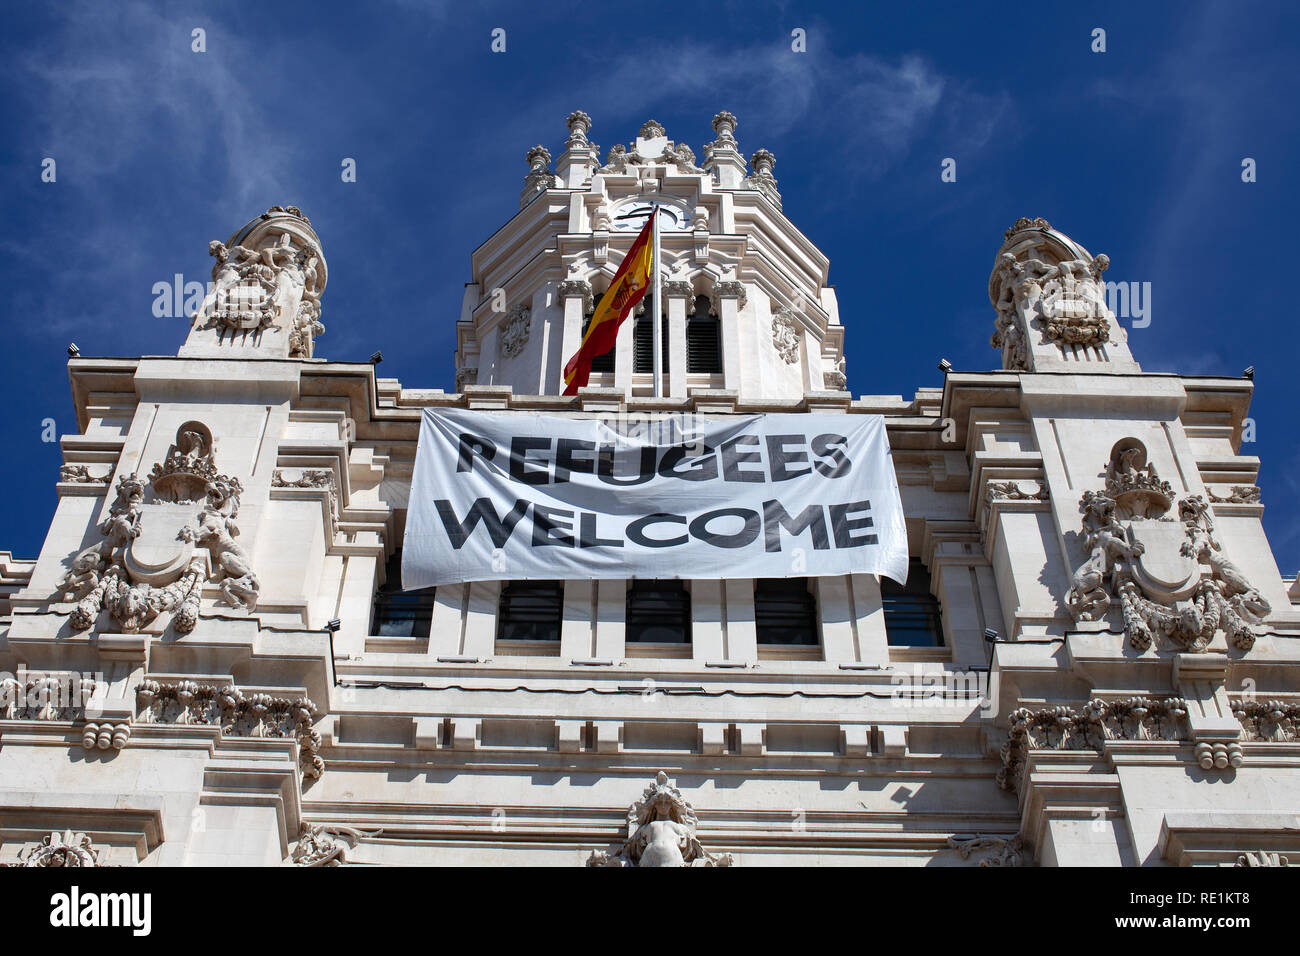 Refugees Welcome, political and social Statement - Stock Image